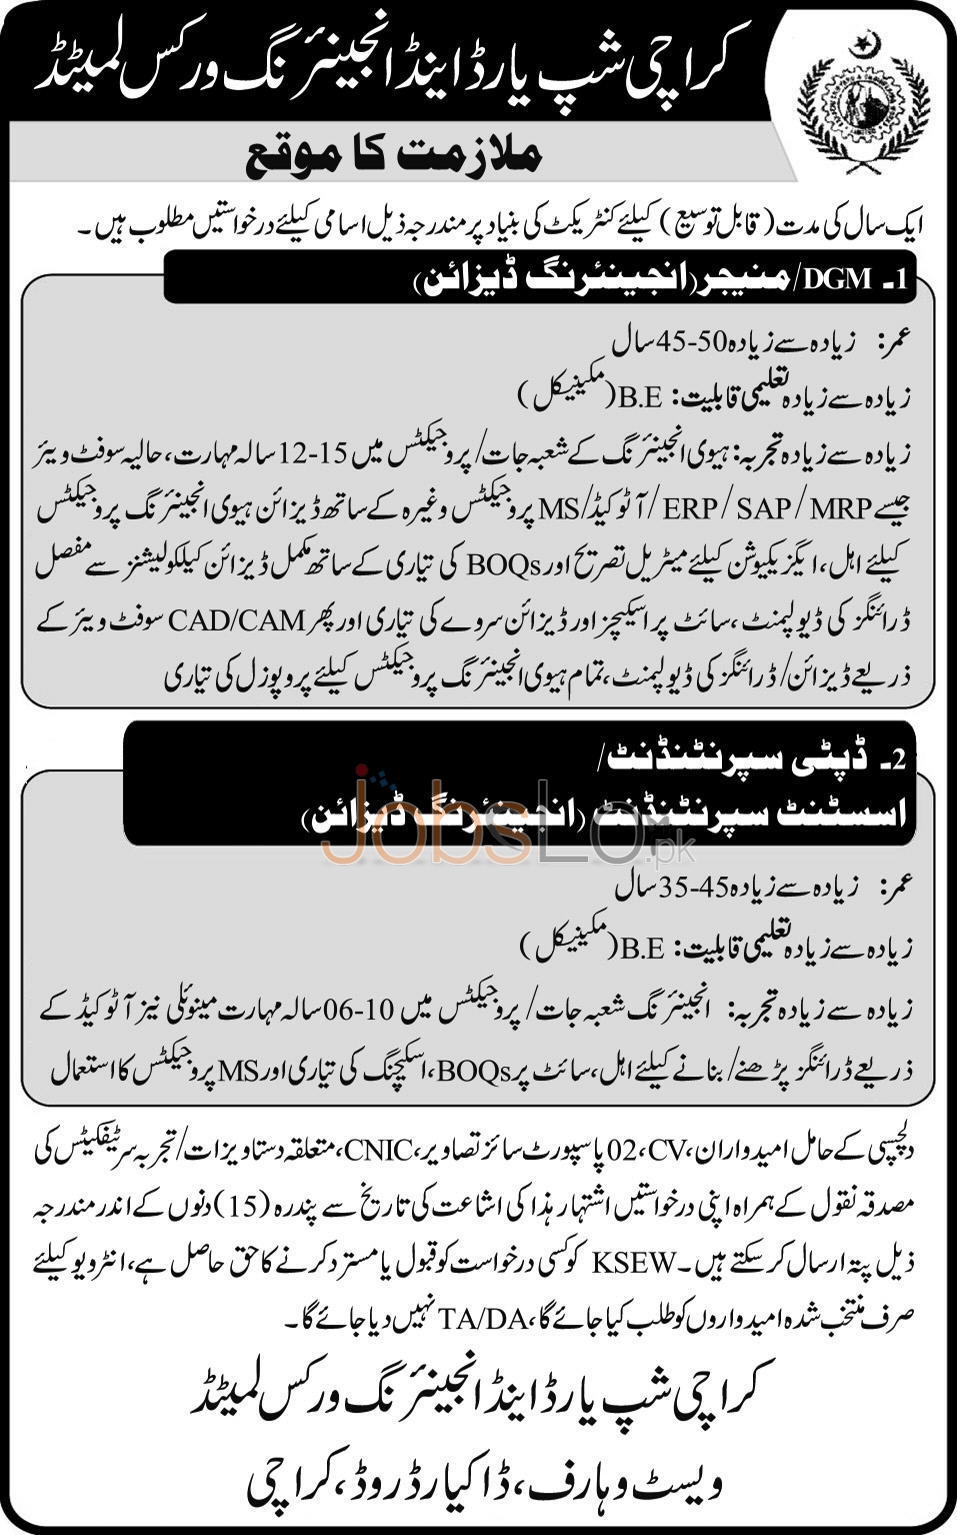 Karachi Shipyard & Engineering Works Ltd 15 March 2016 Vacant Situations Latest